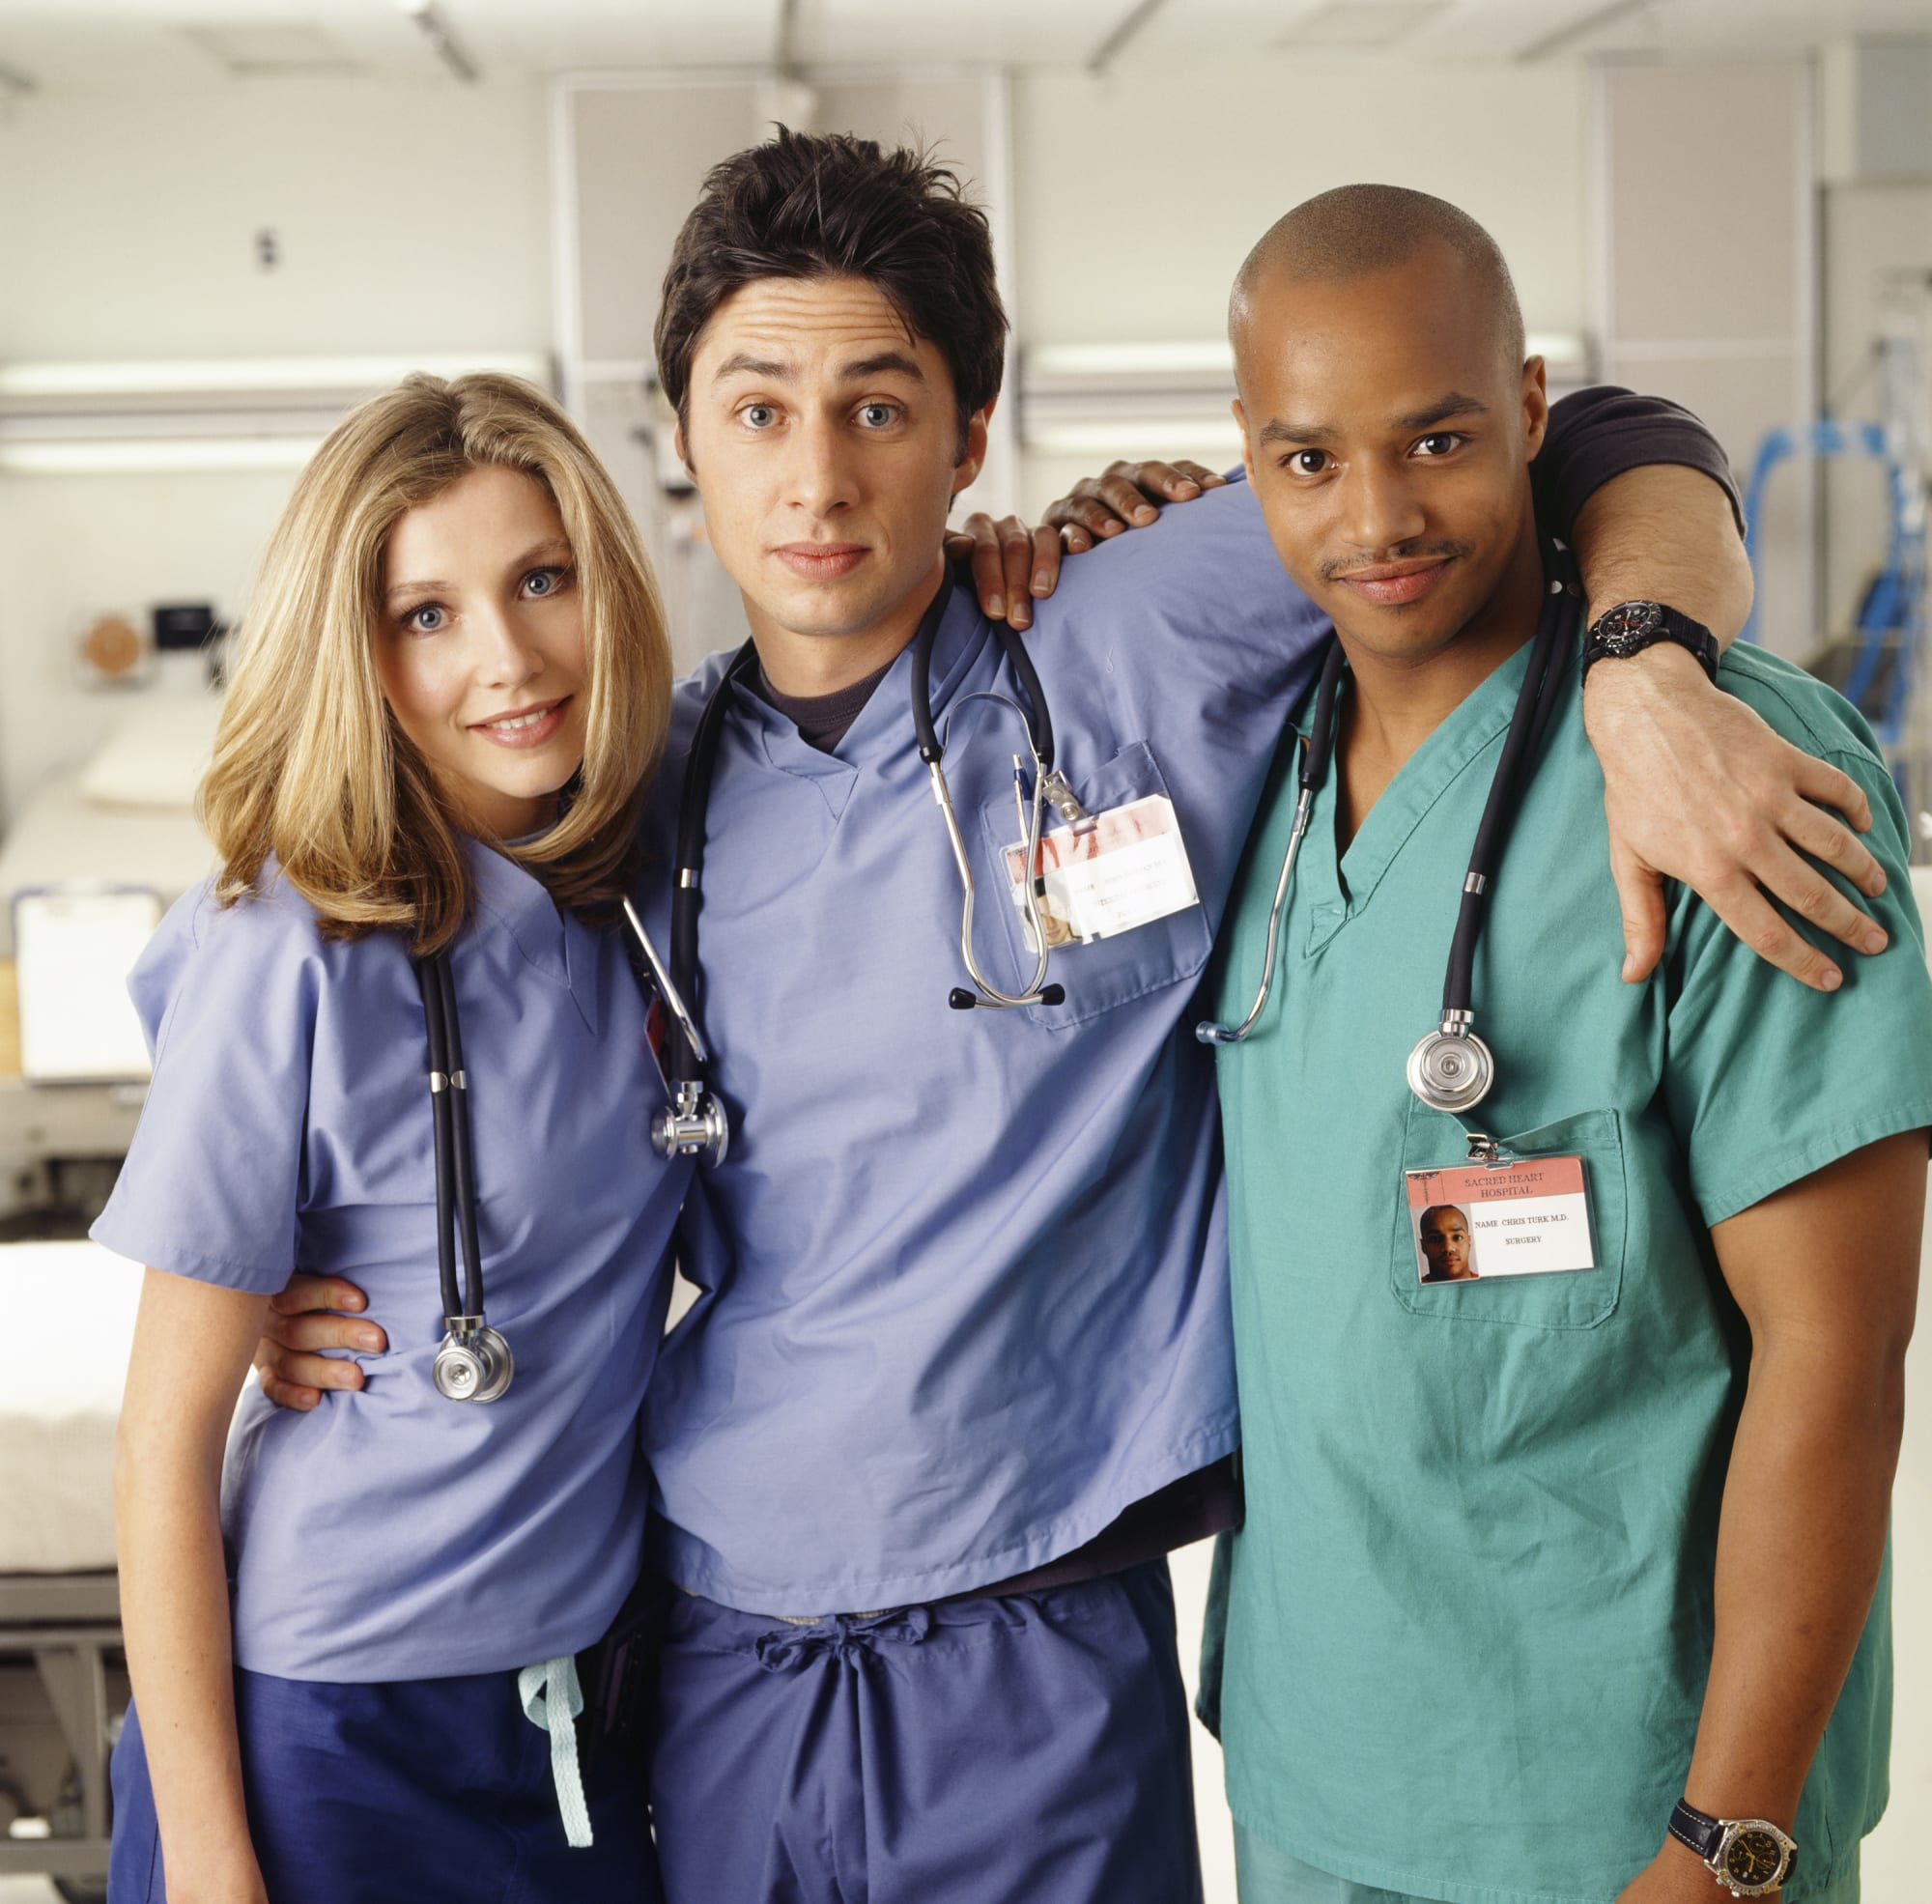 31 thoughts I had while watching Scrubs for the first time